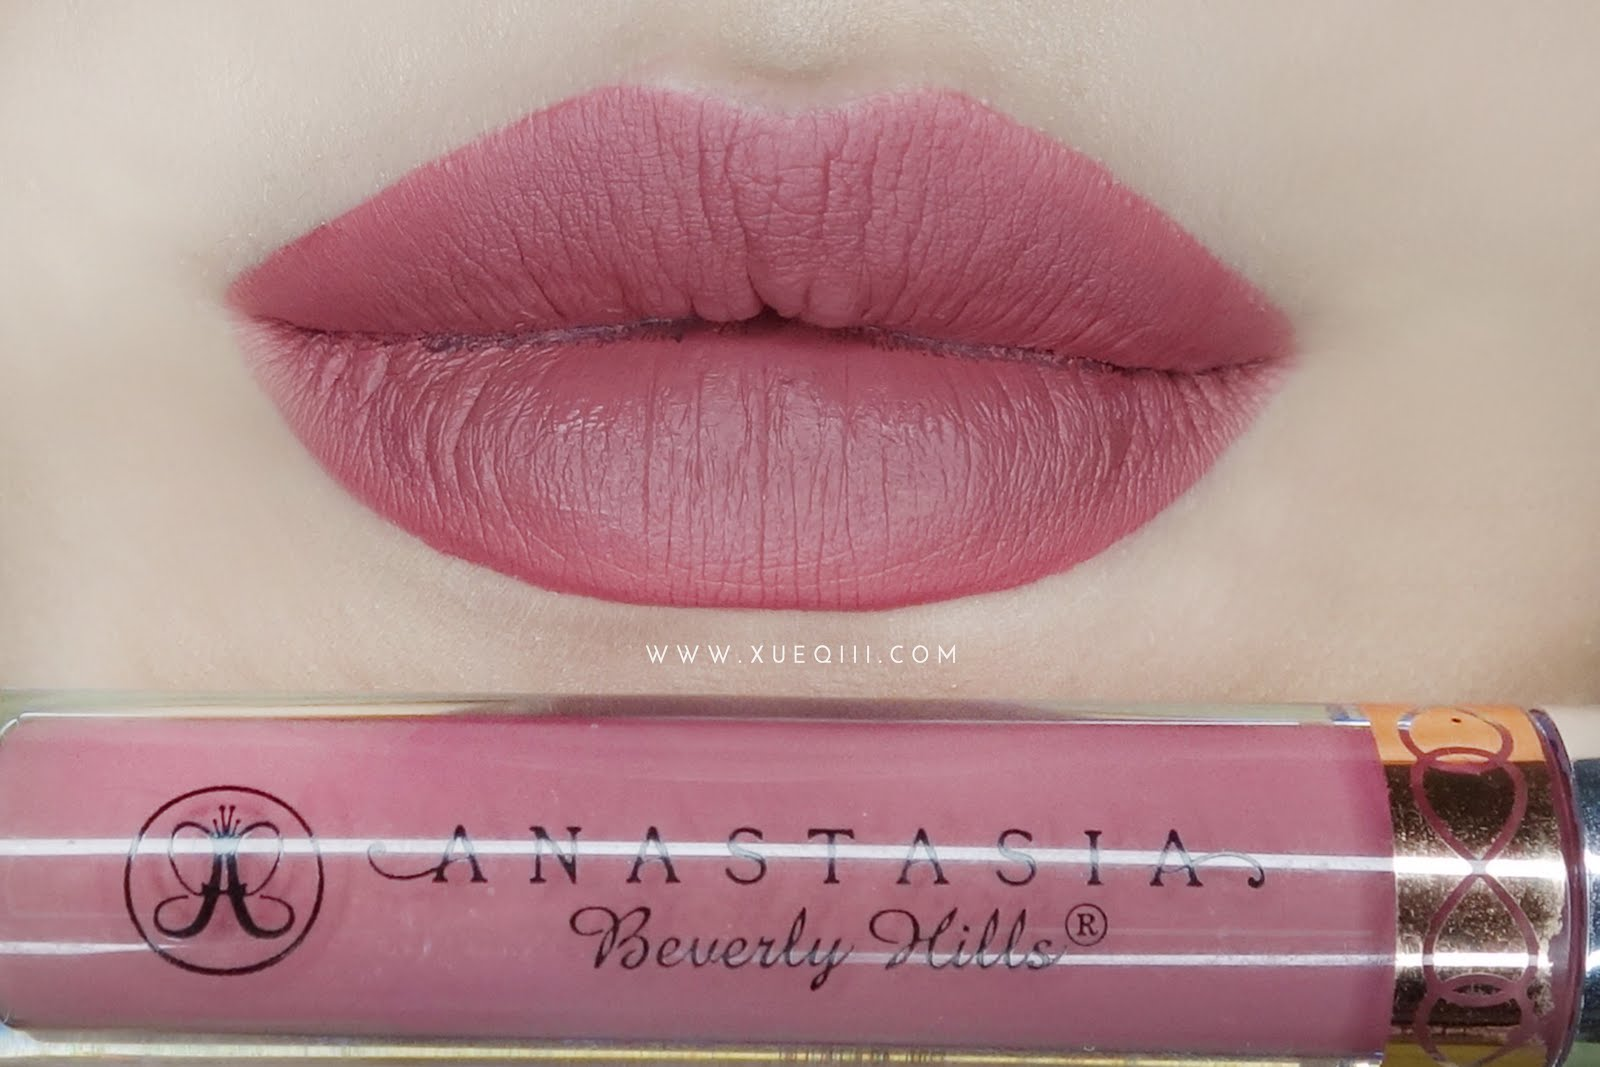 Fabuleux Anastasia Beverly Hills | Liquid Lipstick in Dusty Rose | Xueqi's  BG06